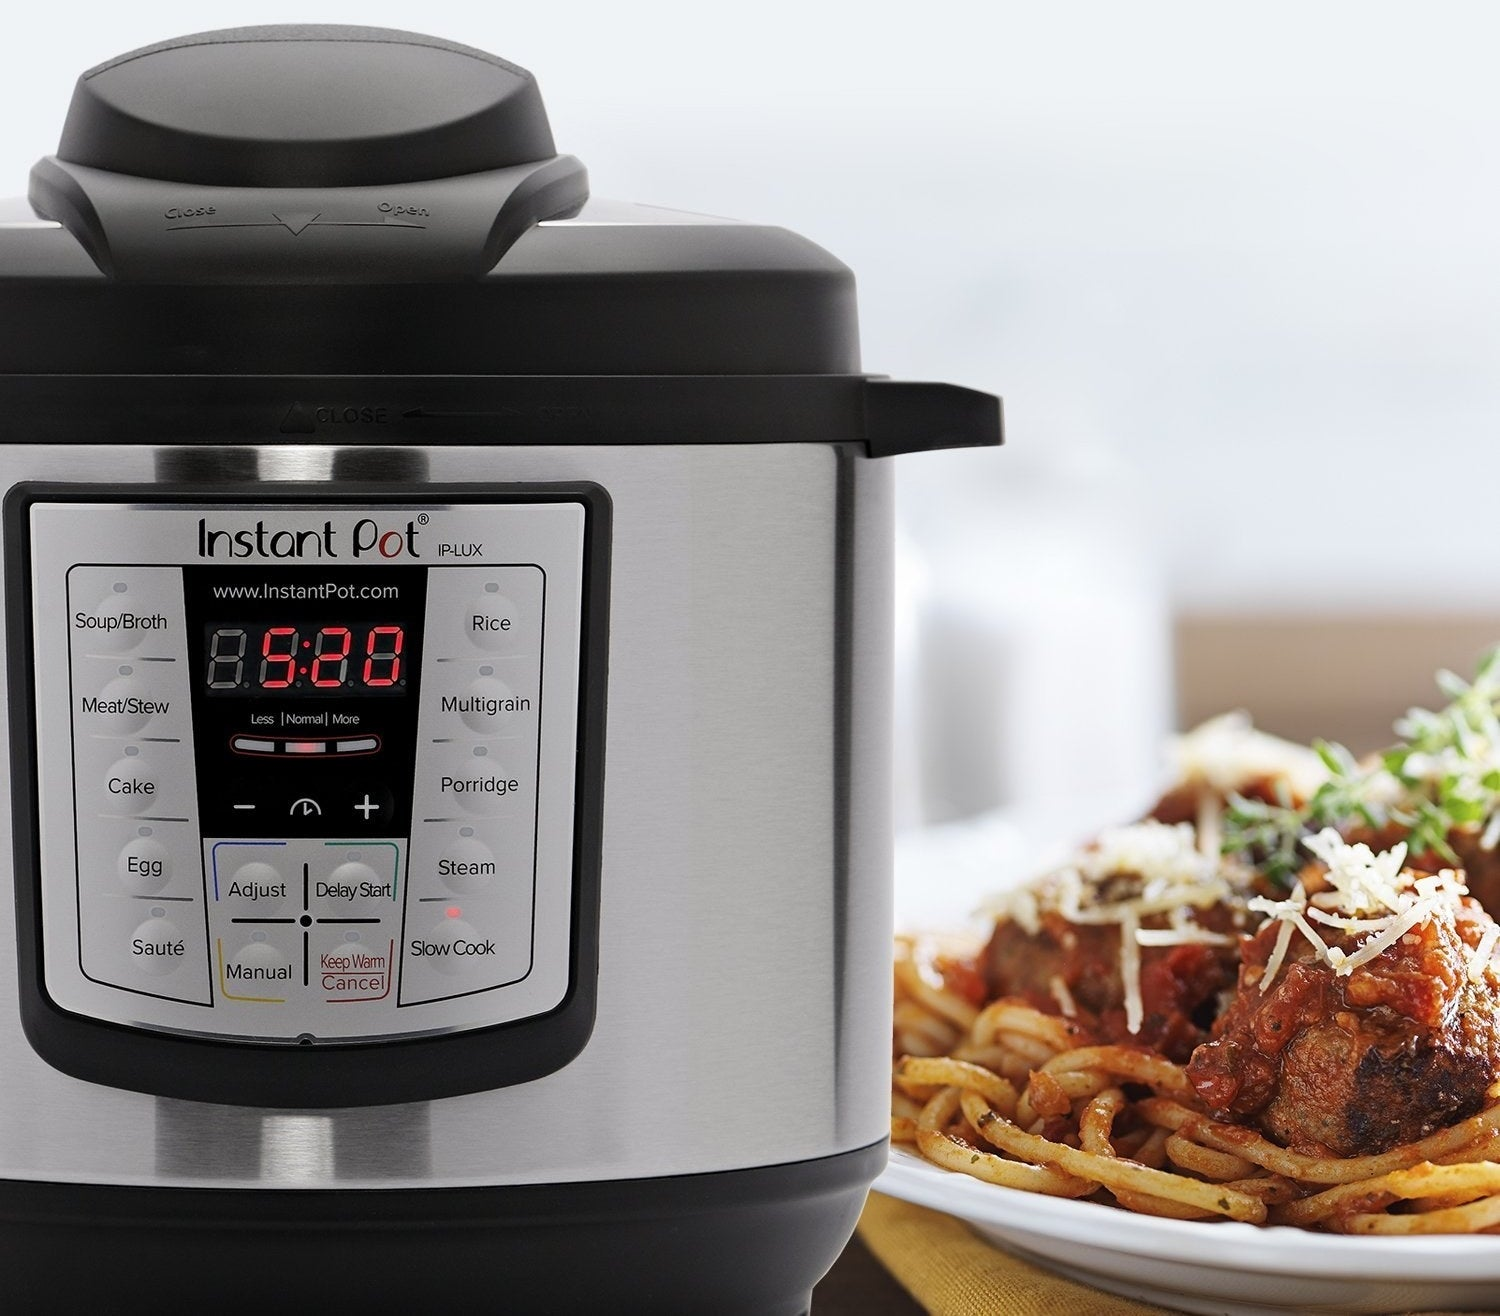 """Combines six kitchen appliances in one — pressure cooker, slow cooker, rice cooker, sauté, steamer, and warmer. It can prepare food up to 70% faster. It can keep food warm automatically for up to 10 hours, and there are three temperatures for sauté and slow-cook. The inner cooking pot, lid, and steam-rack are dishwasher-safe!Promising review: """"This is probably the only kitchen appliance I've ever bought that has earned permanent status on my kitchen counter. I use it at least three times a week. It's particularly perfect for vegans and WFPB-eaters. I can cook beans and grains from scratch in no time! Such a wonderful investment. I liked it so much that I got one for each of my sisters for the holidays. Best. Thing. Ever."""" —cynthia w. rogersGet it from Amazon for $59.95+ (available in two sizes).And while you're at it, you're gonna want this cookbook filled with 100+ Instant Pot recipes. Get it from Amazon for $9.33."""